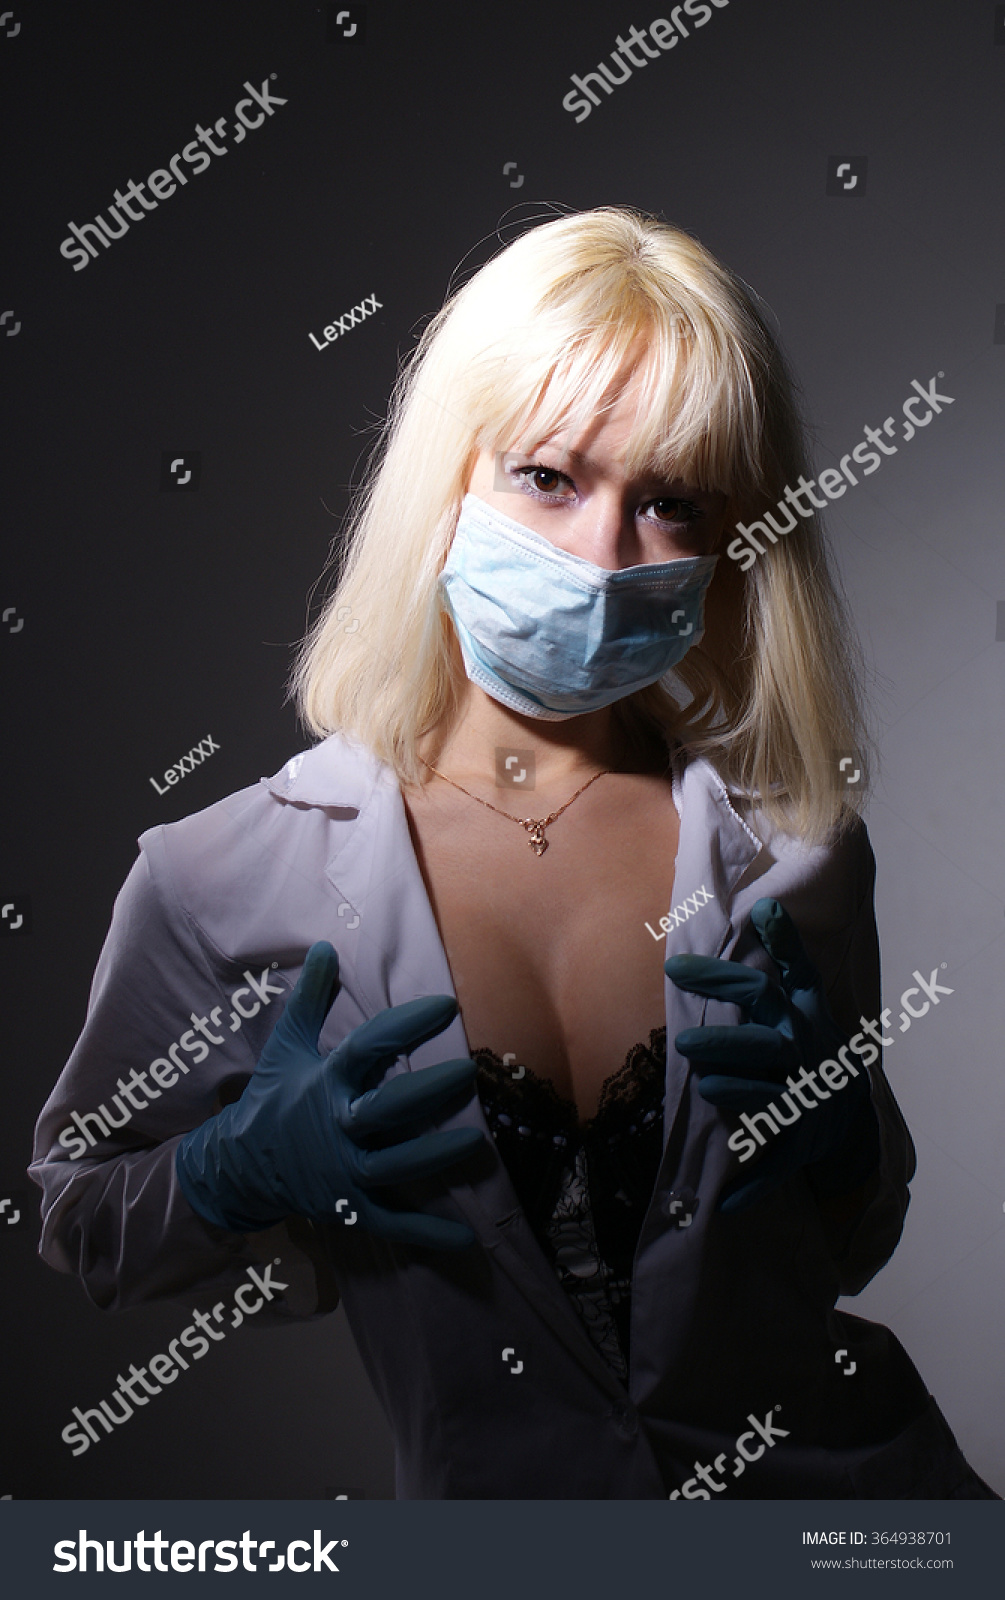 Young beautiful girl in nurse costume posing at studio.Isolated portrait